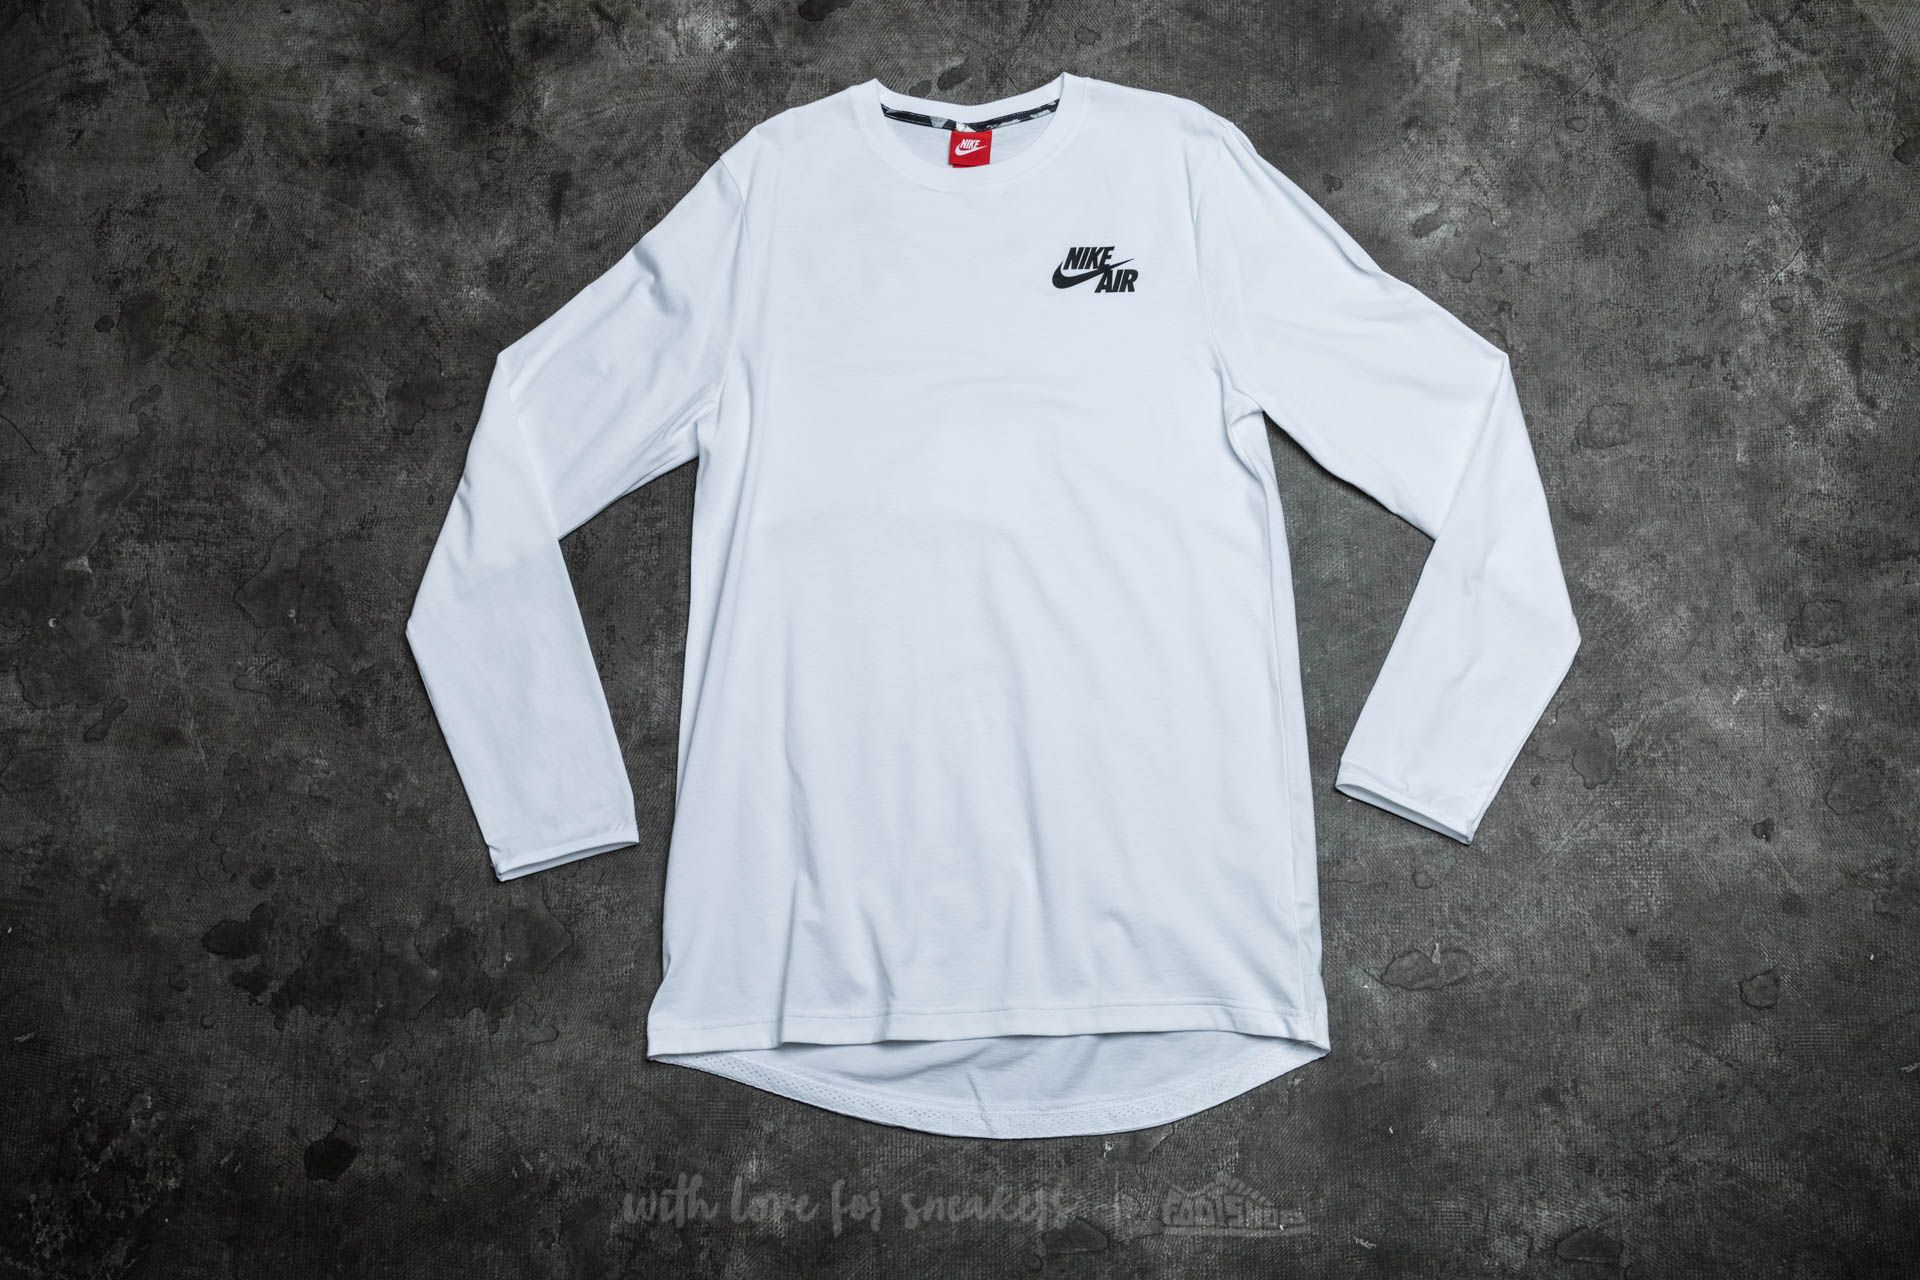 ba880646f3cb Nike Air Long Sleeve Top White  Black